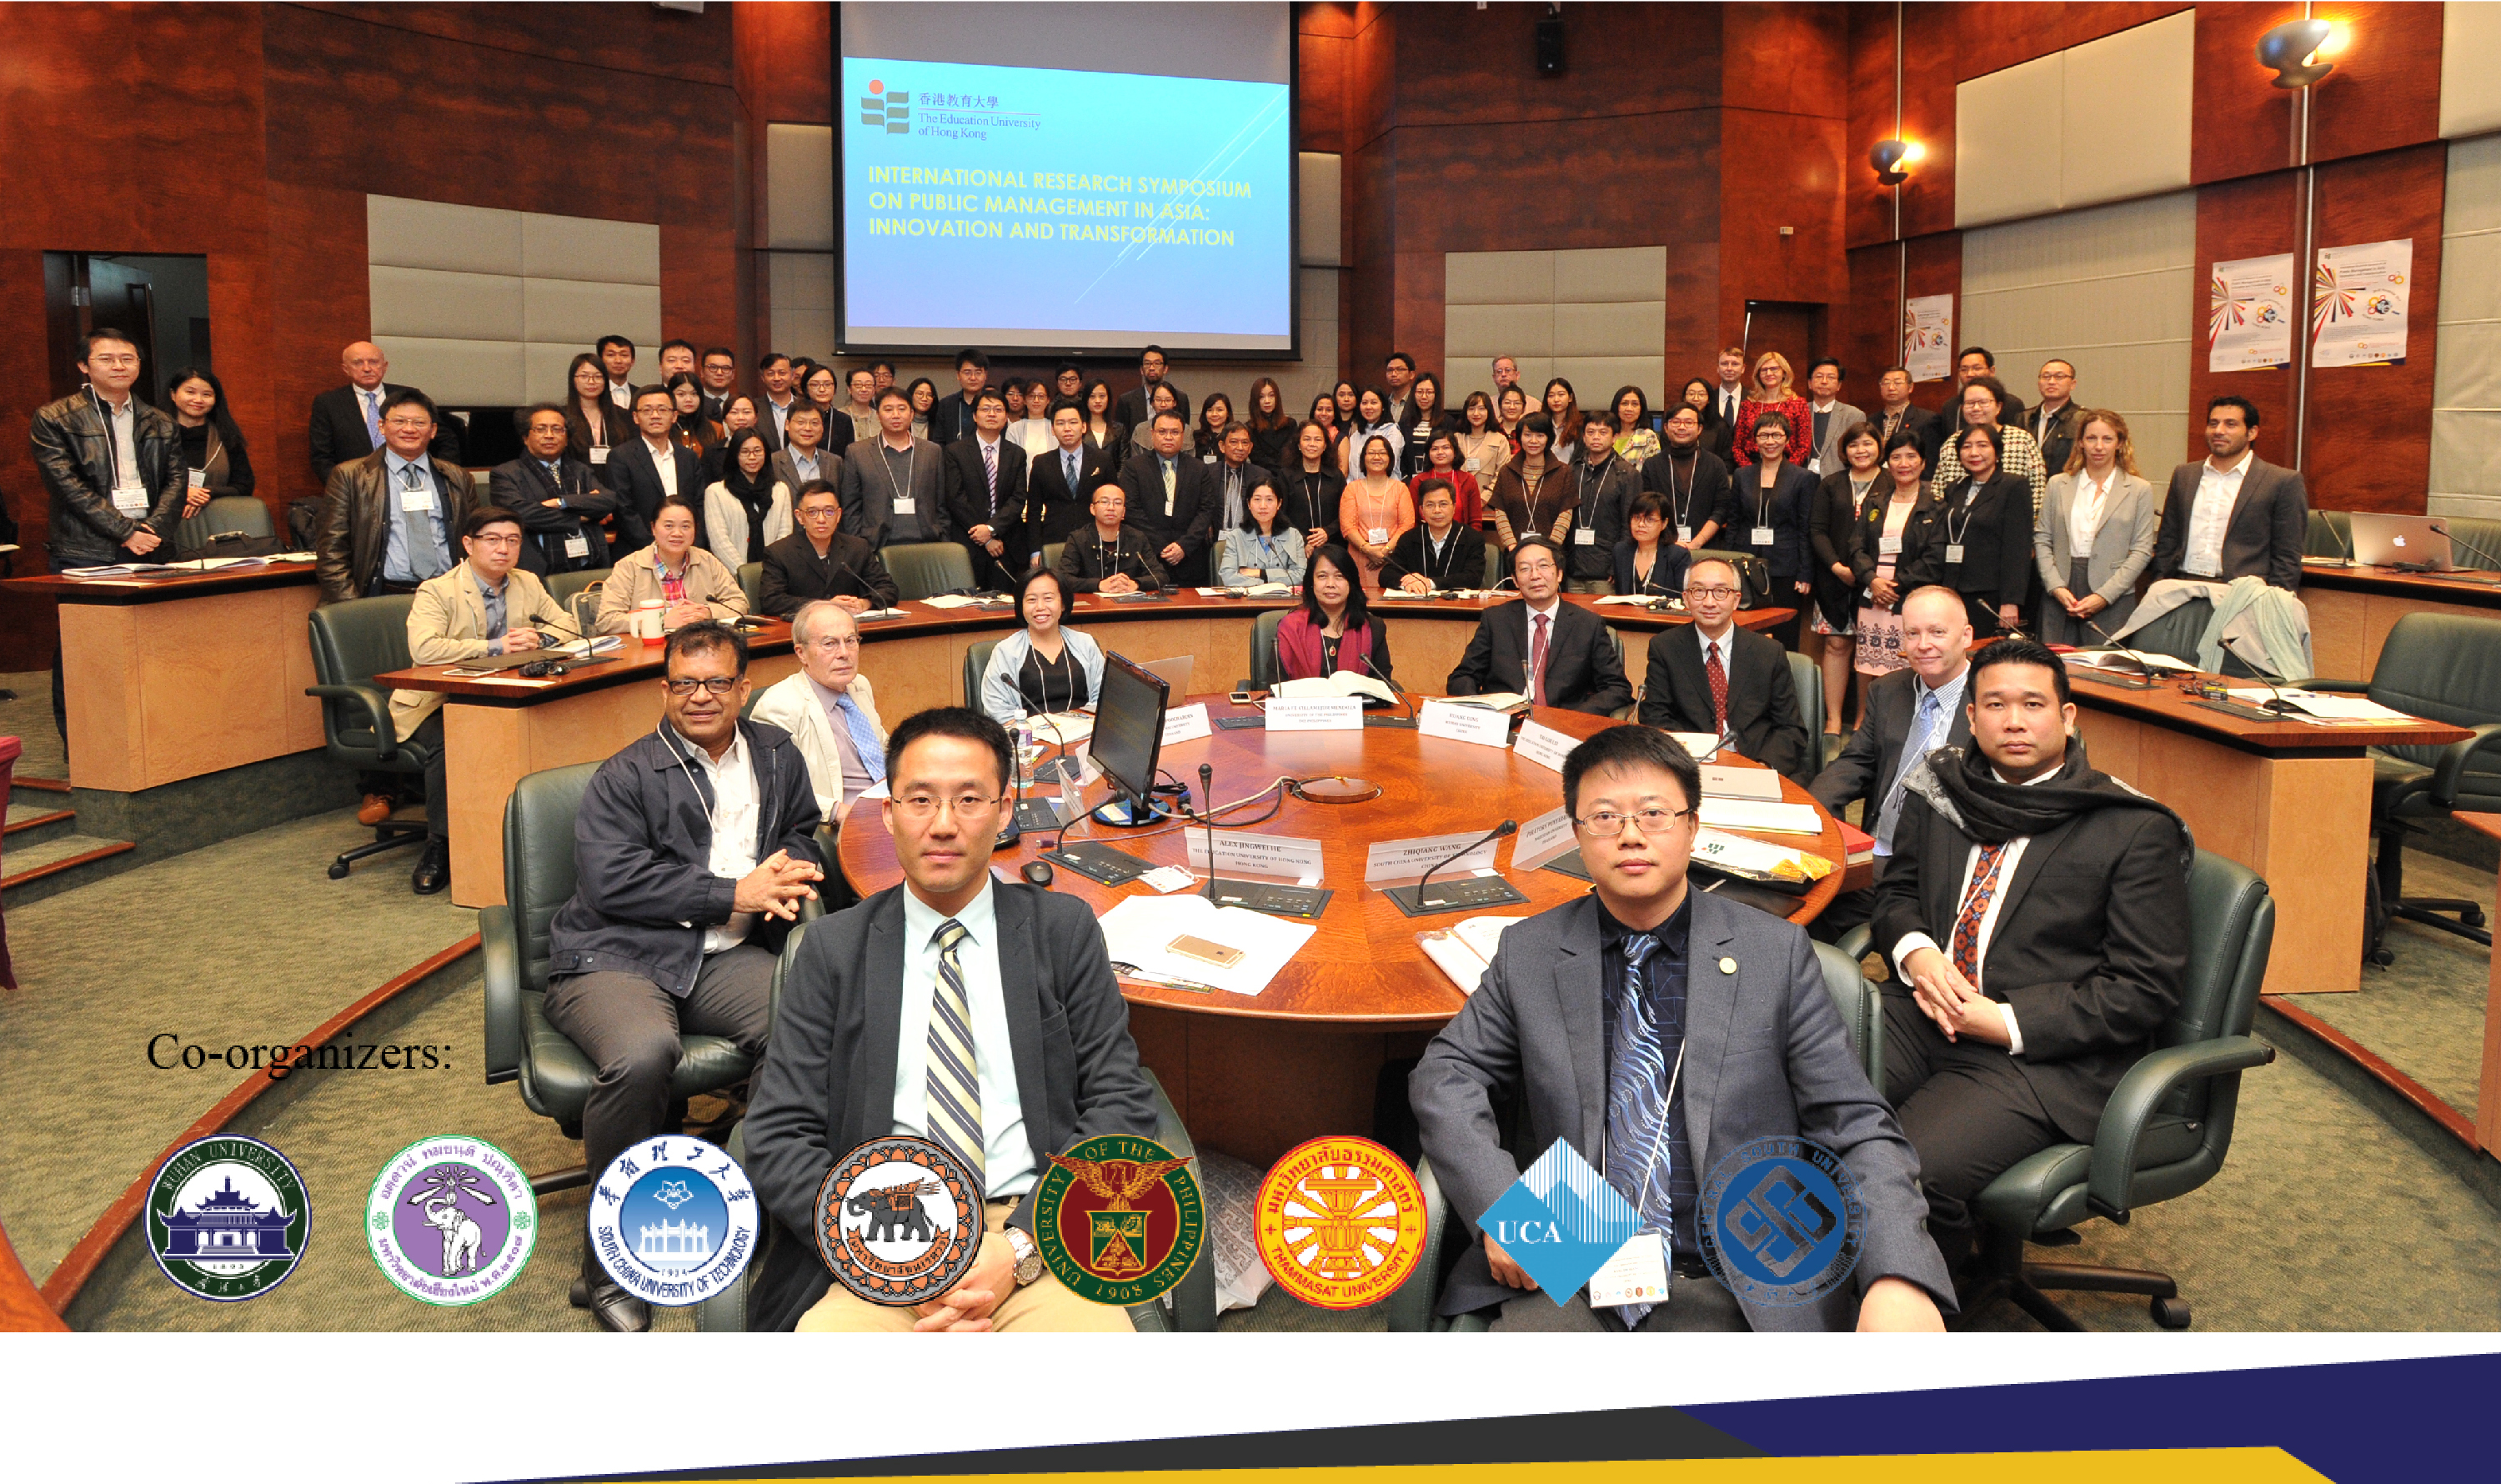 NCPAG co-organizes int'l symposium on public management in Asia